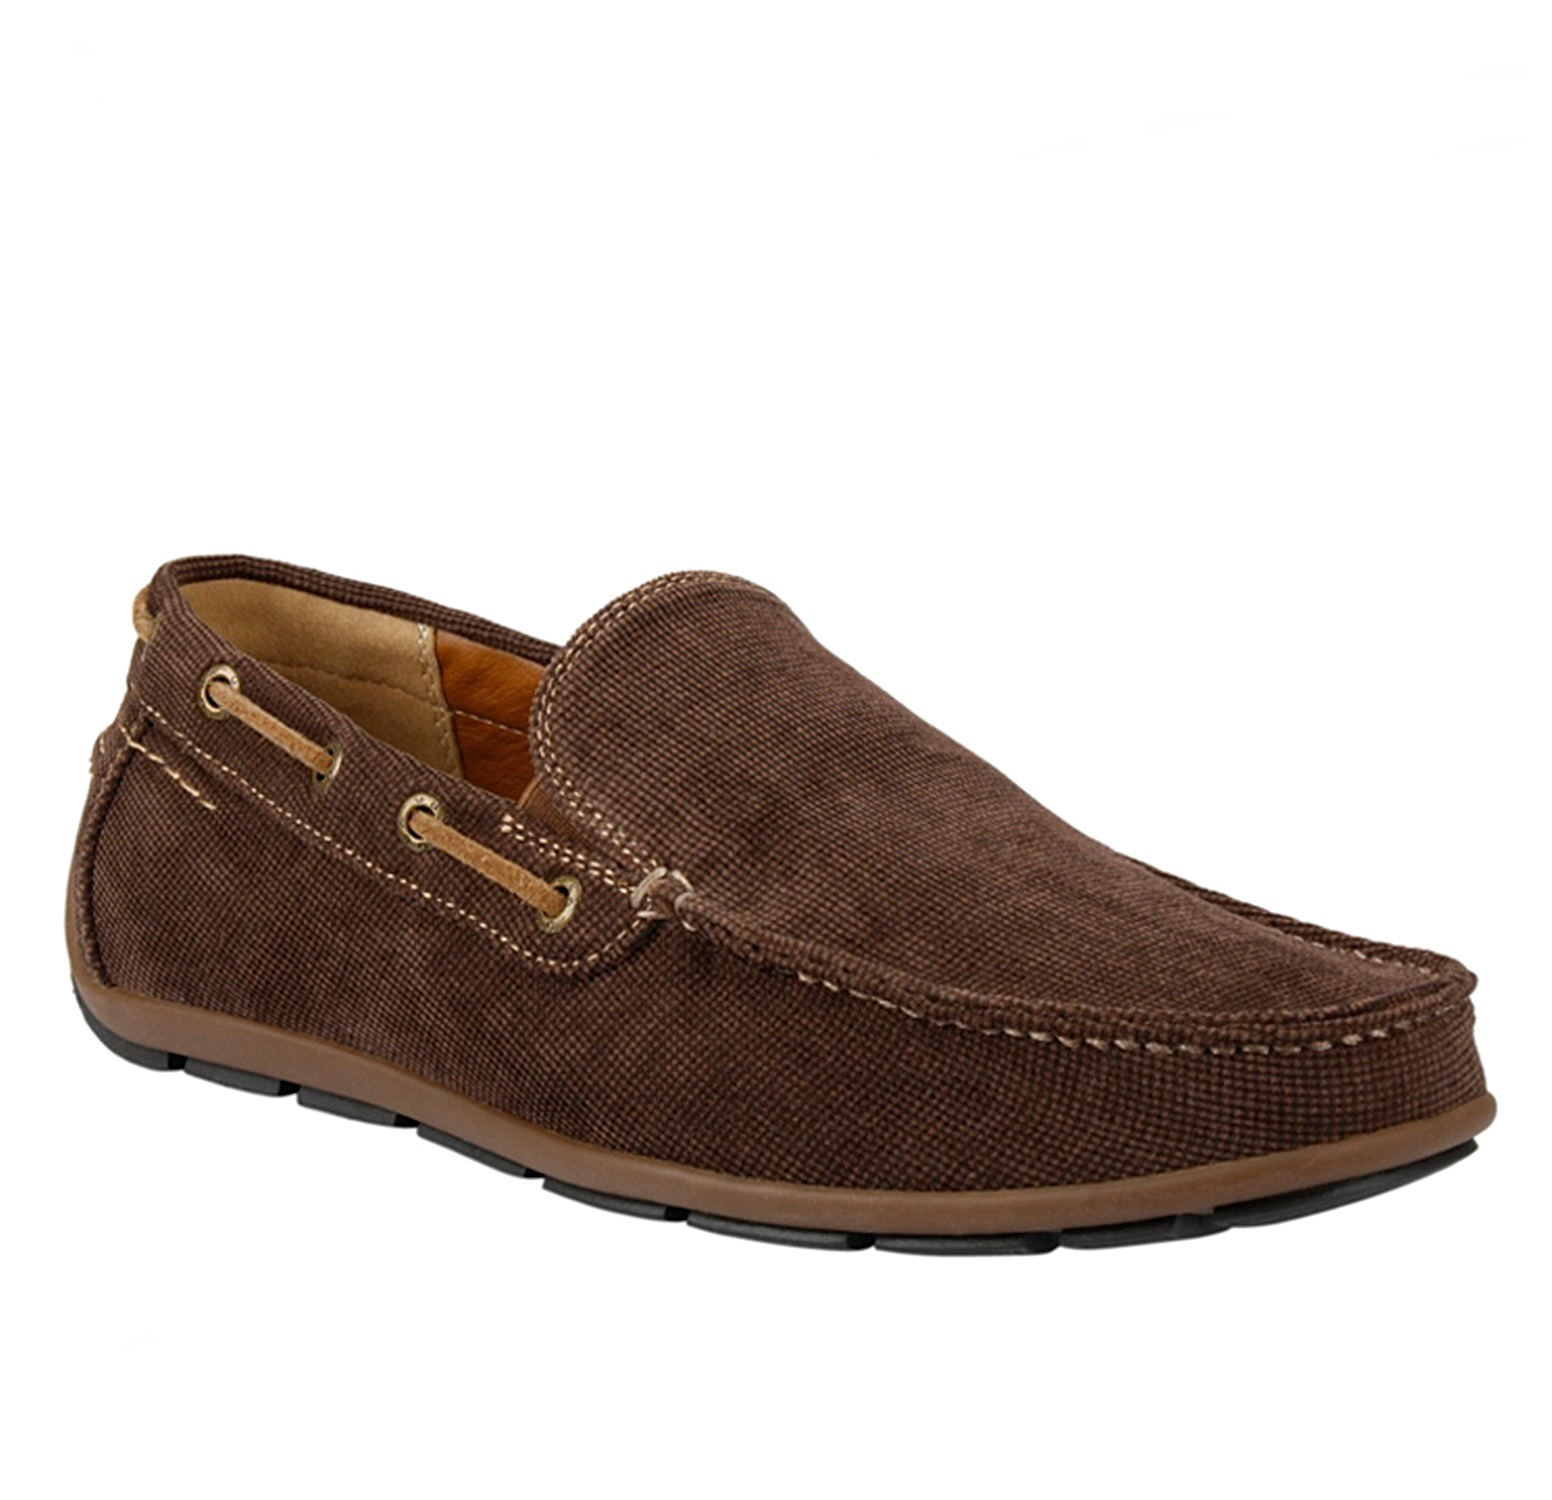 gbx mens casual loafers slip on moc toe tapered moccasin